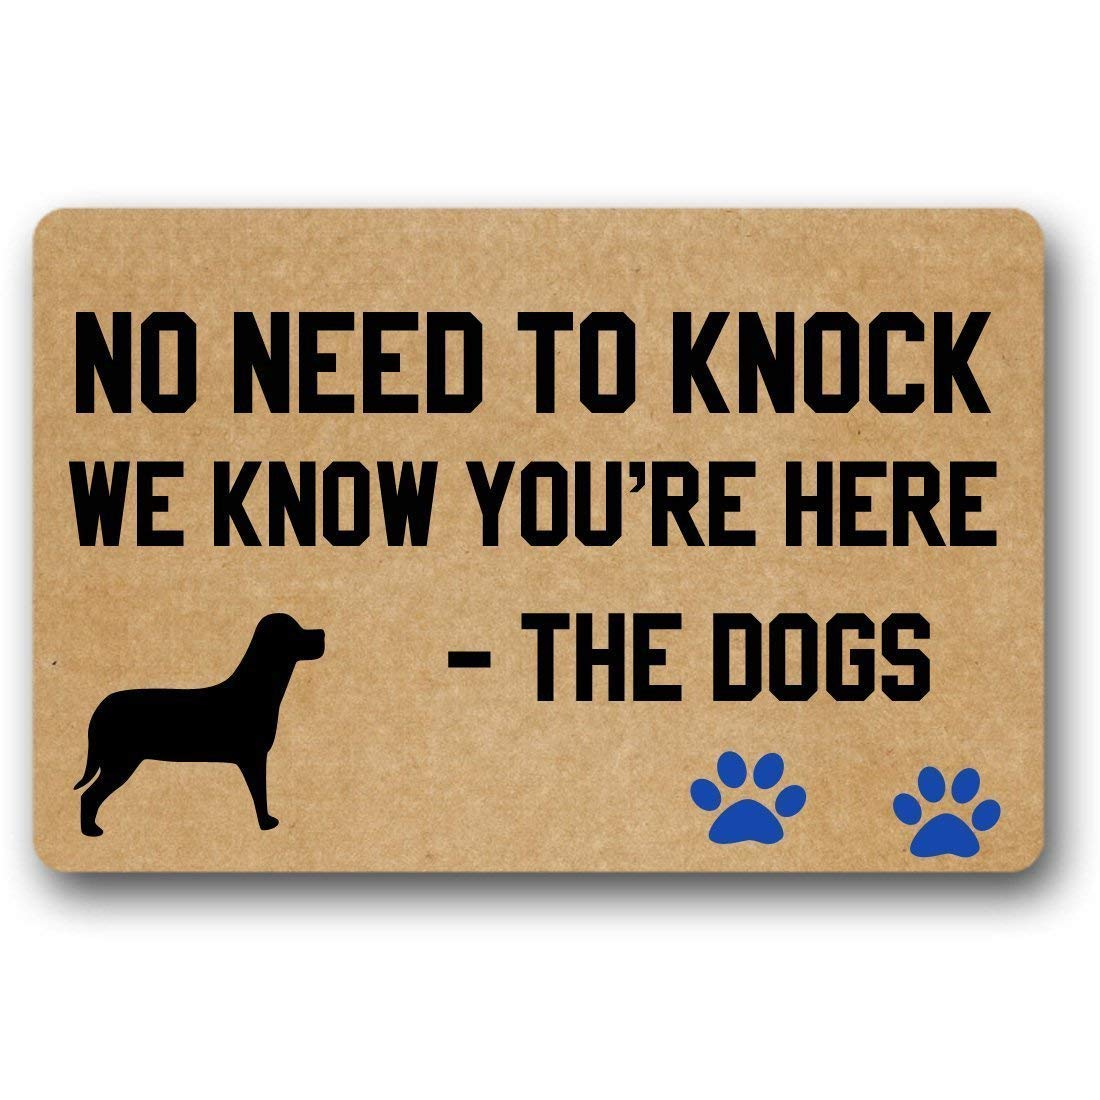 No Need to Knock We Know You're Here The Dogs Funny Door Mat Indoor/Outdoor Rubber Non Slip Doormat for Patio Front Door 15.7x23.6inch X-Large